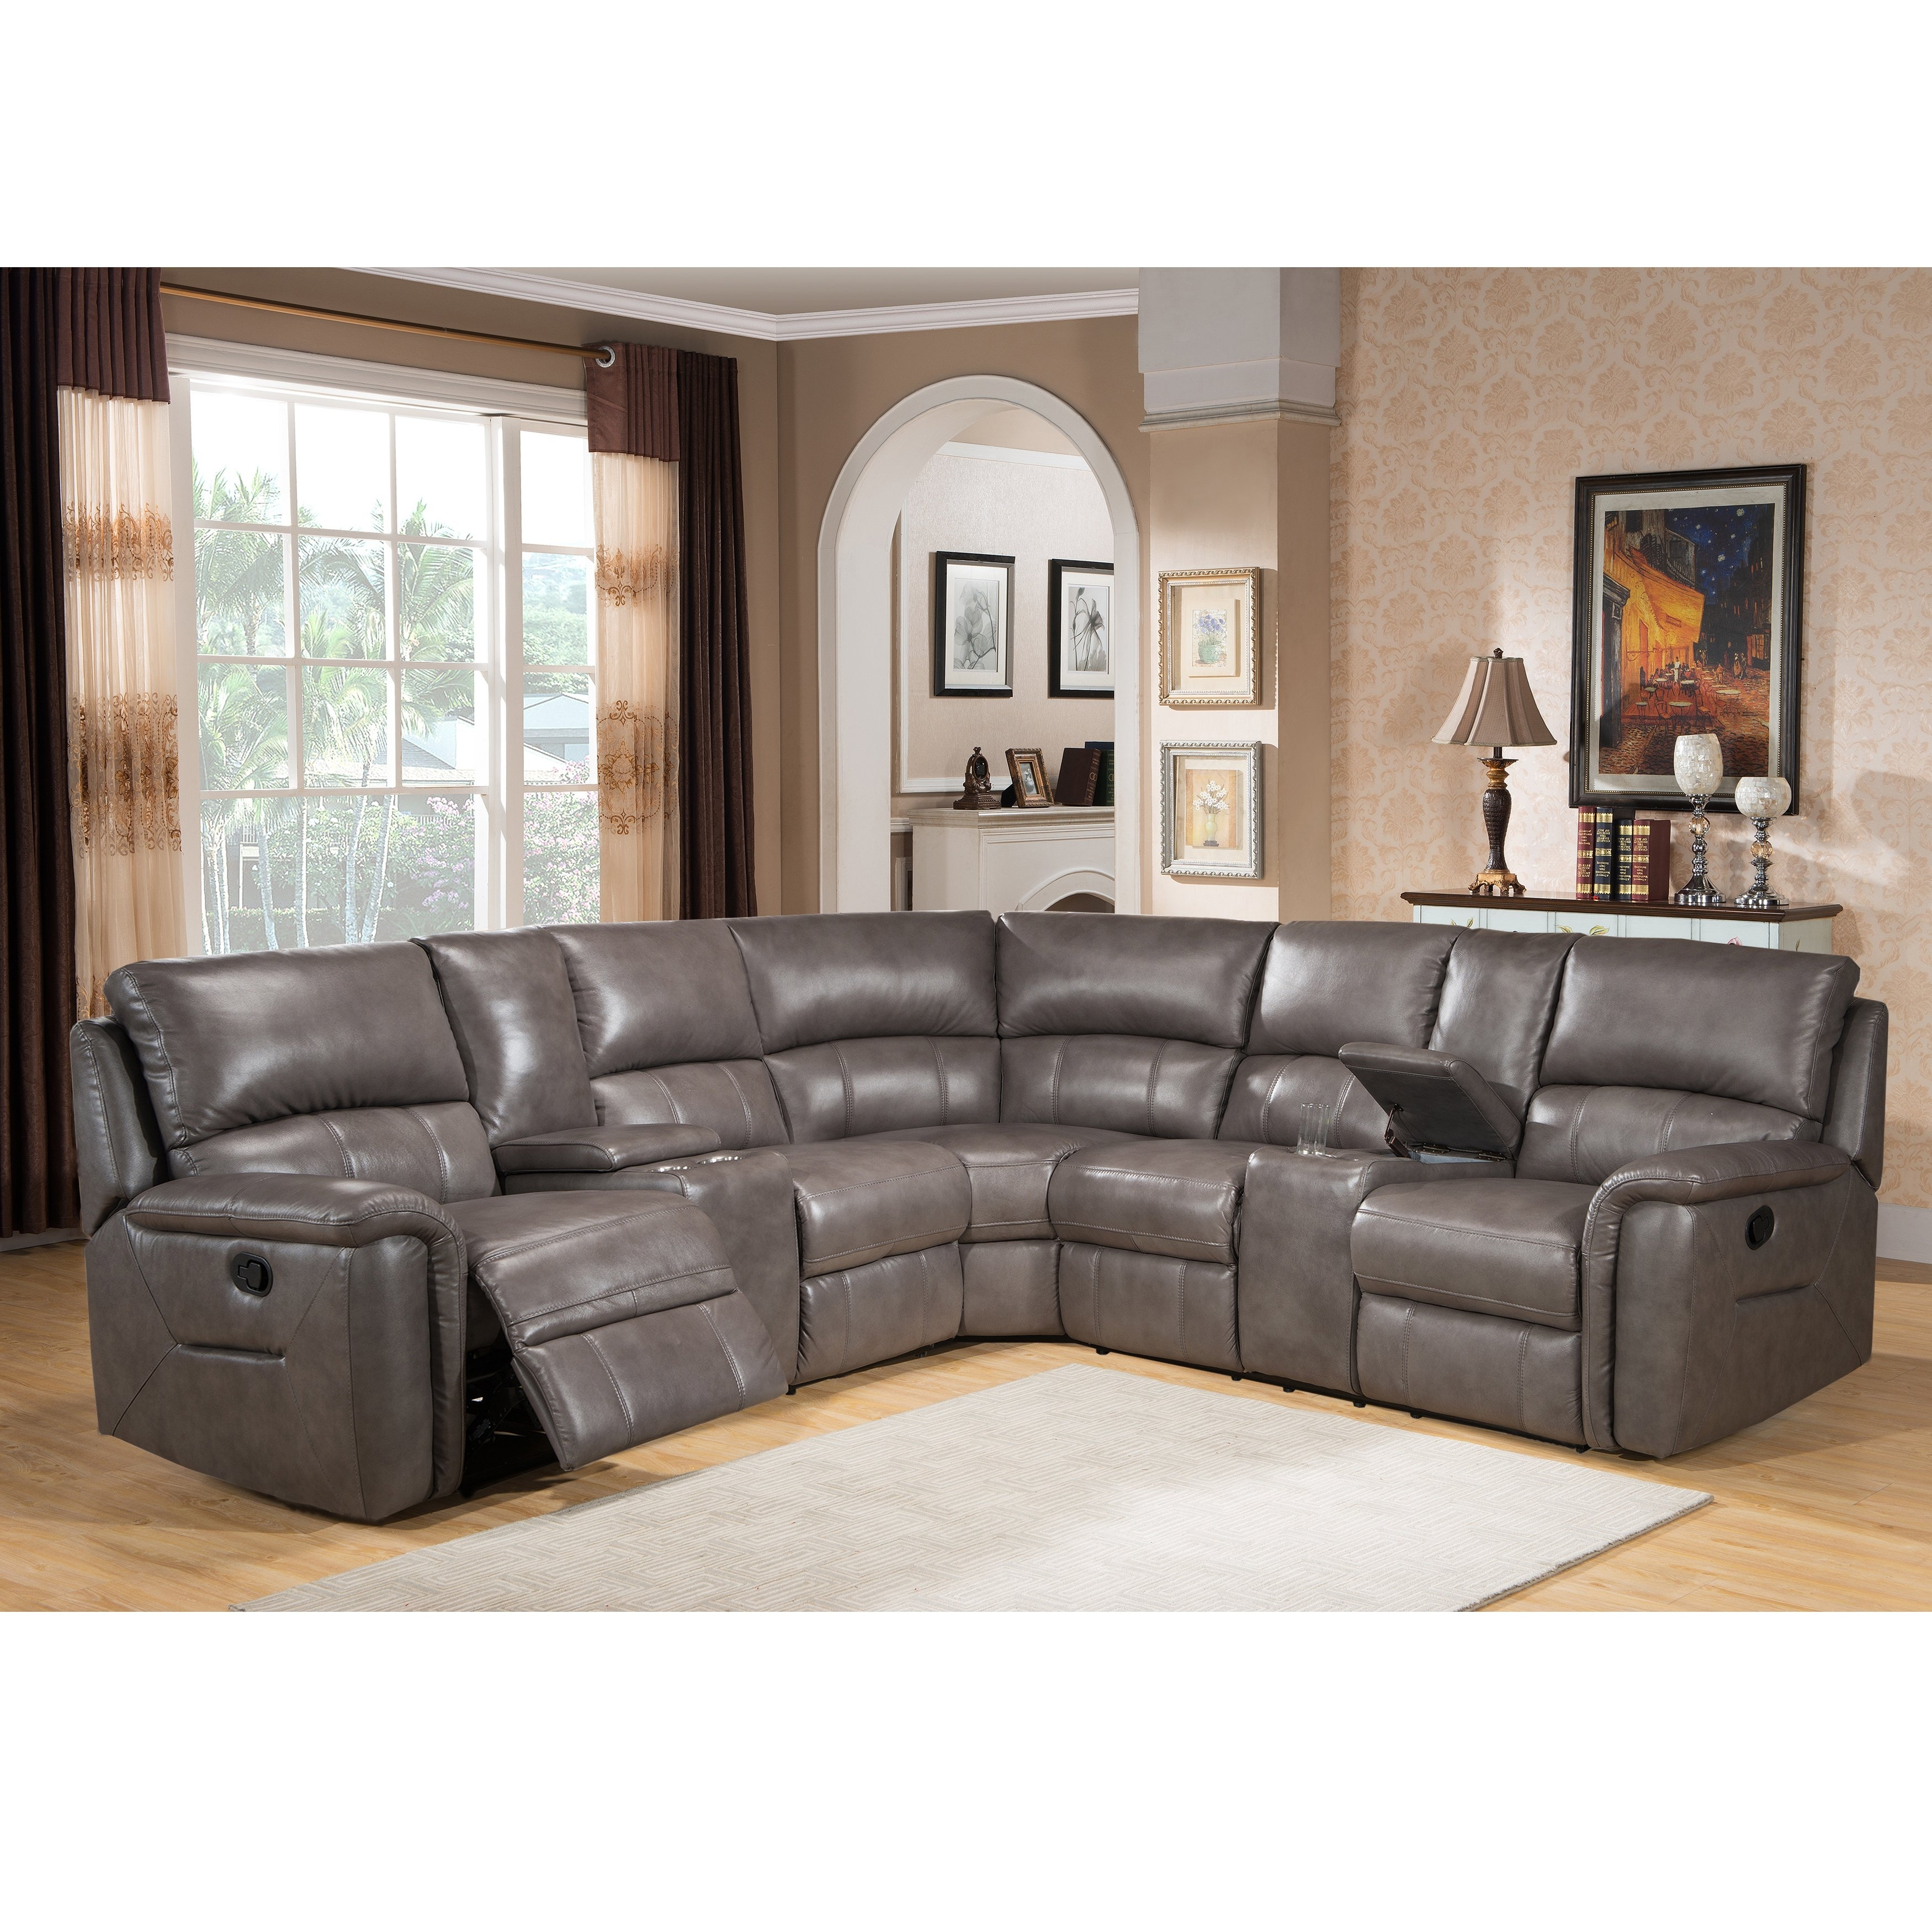 Shop Cortez Premium Top Grain Gray Leather Reclining Sectional Sofa intended for Harper Foam 3 Piece Sectionals With Raf Chaise (Image 24 of 30)